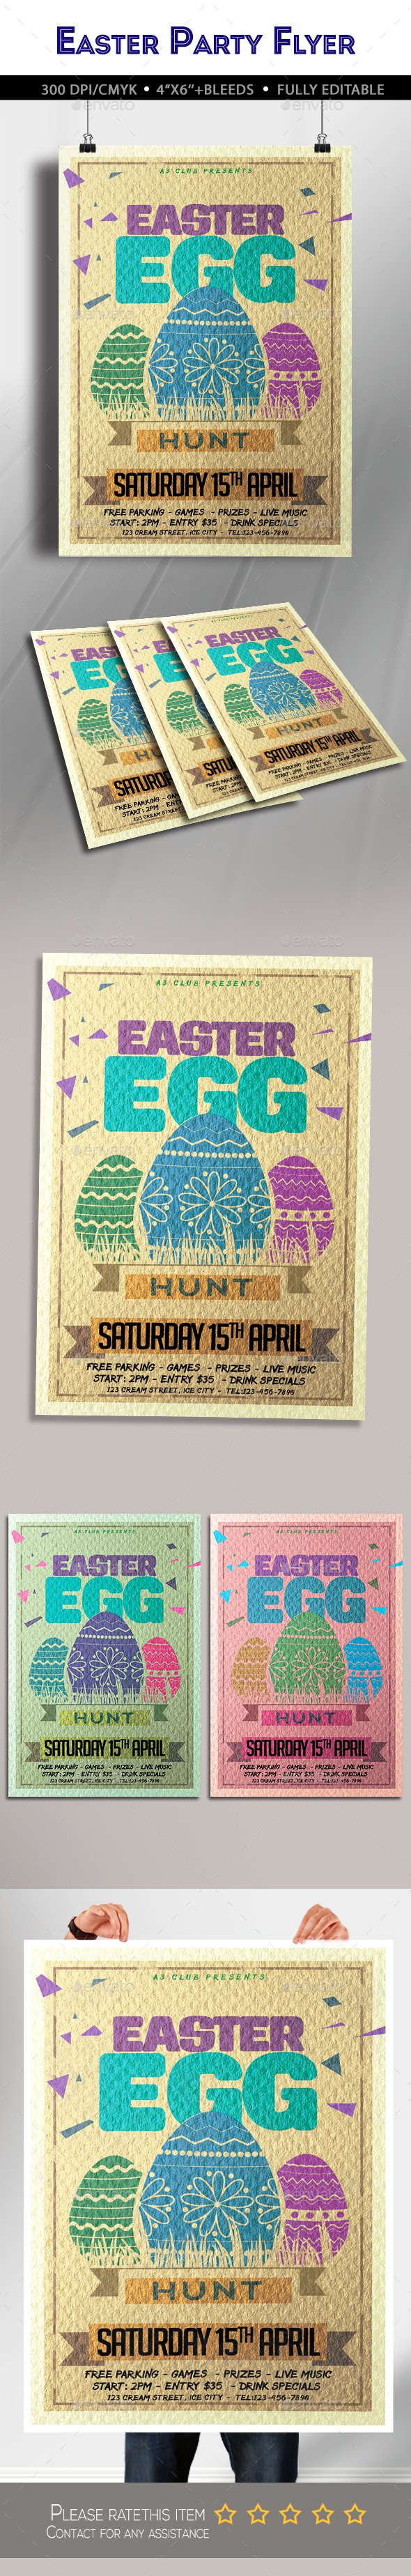 Easter Egg Hunt Party Flyer - Clubs & Parties Events